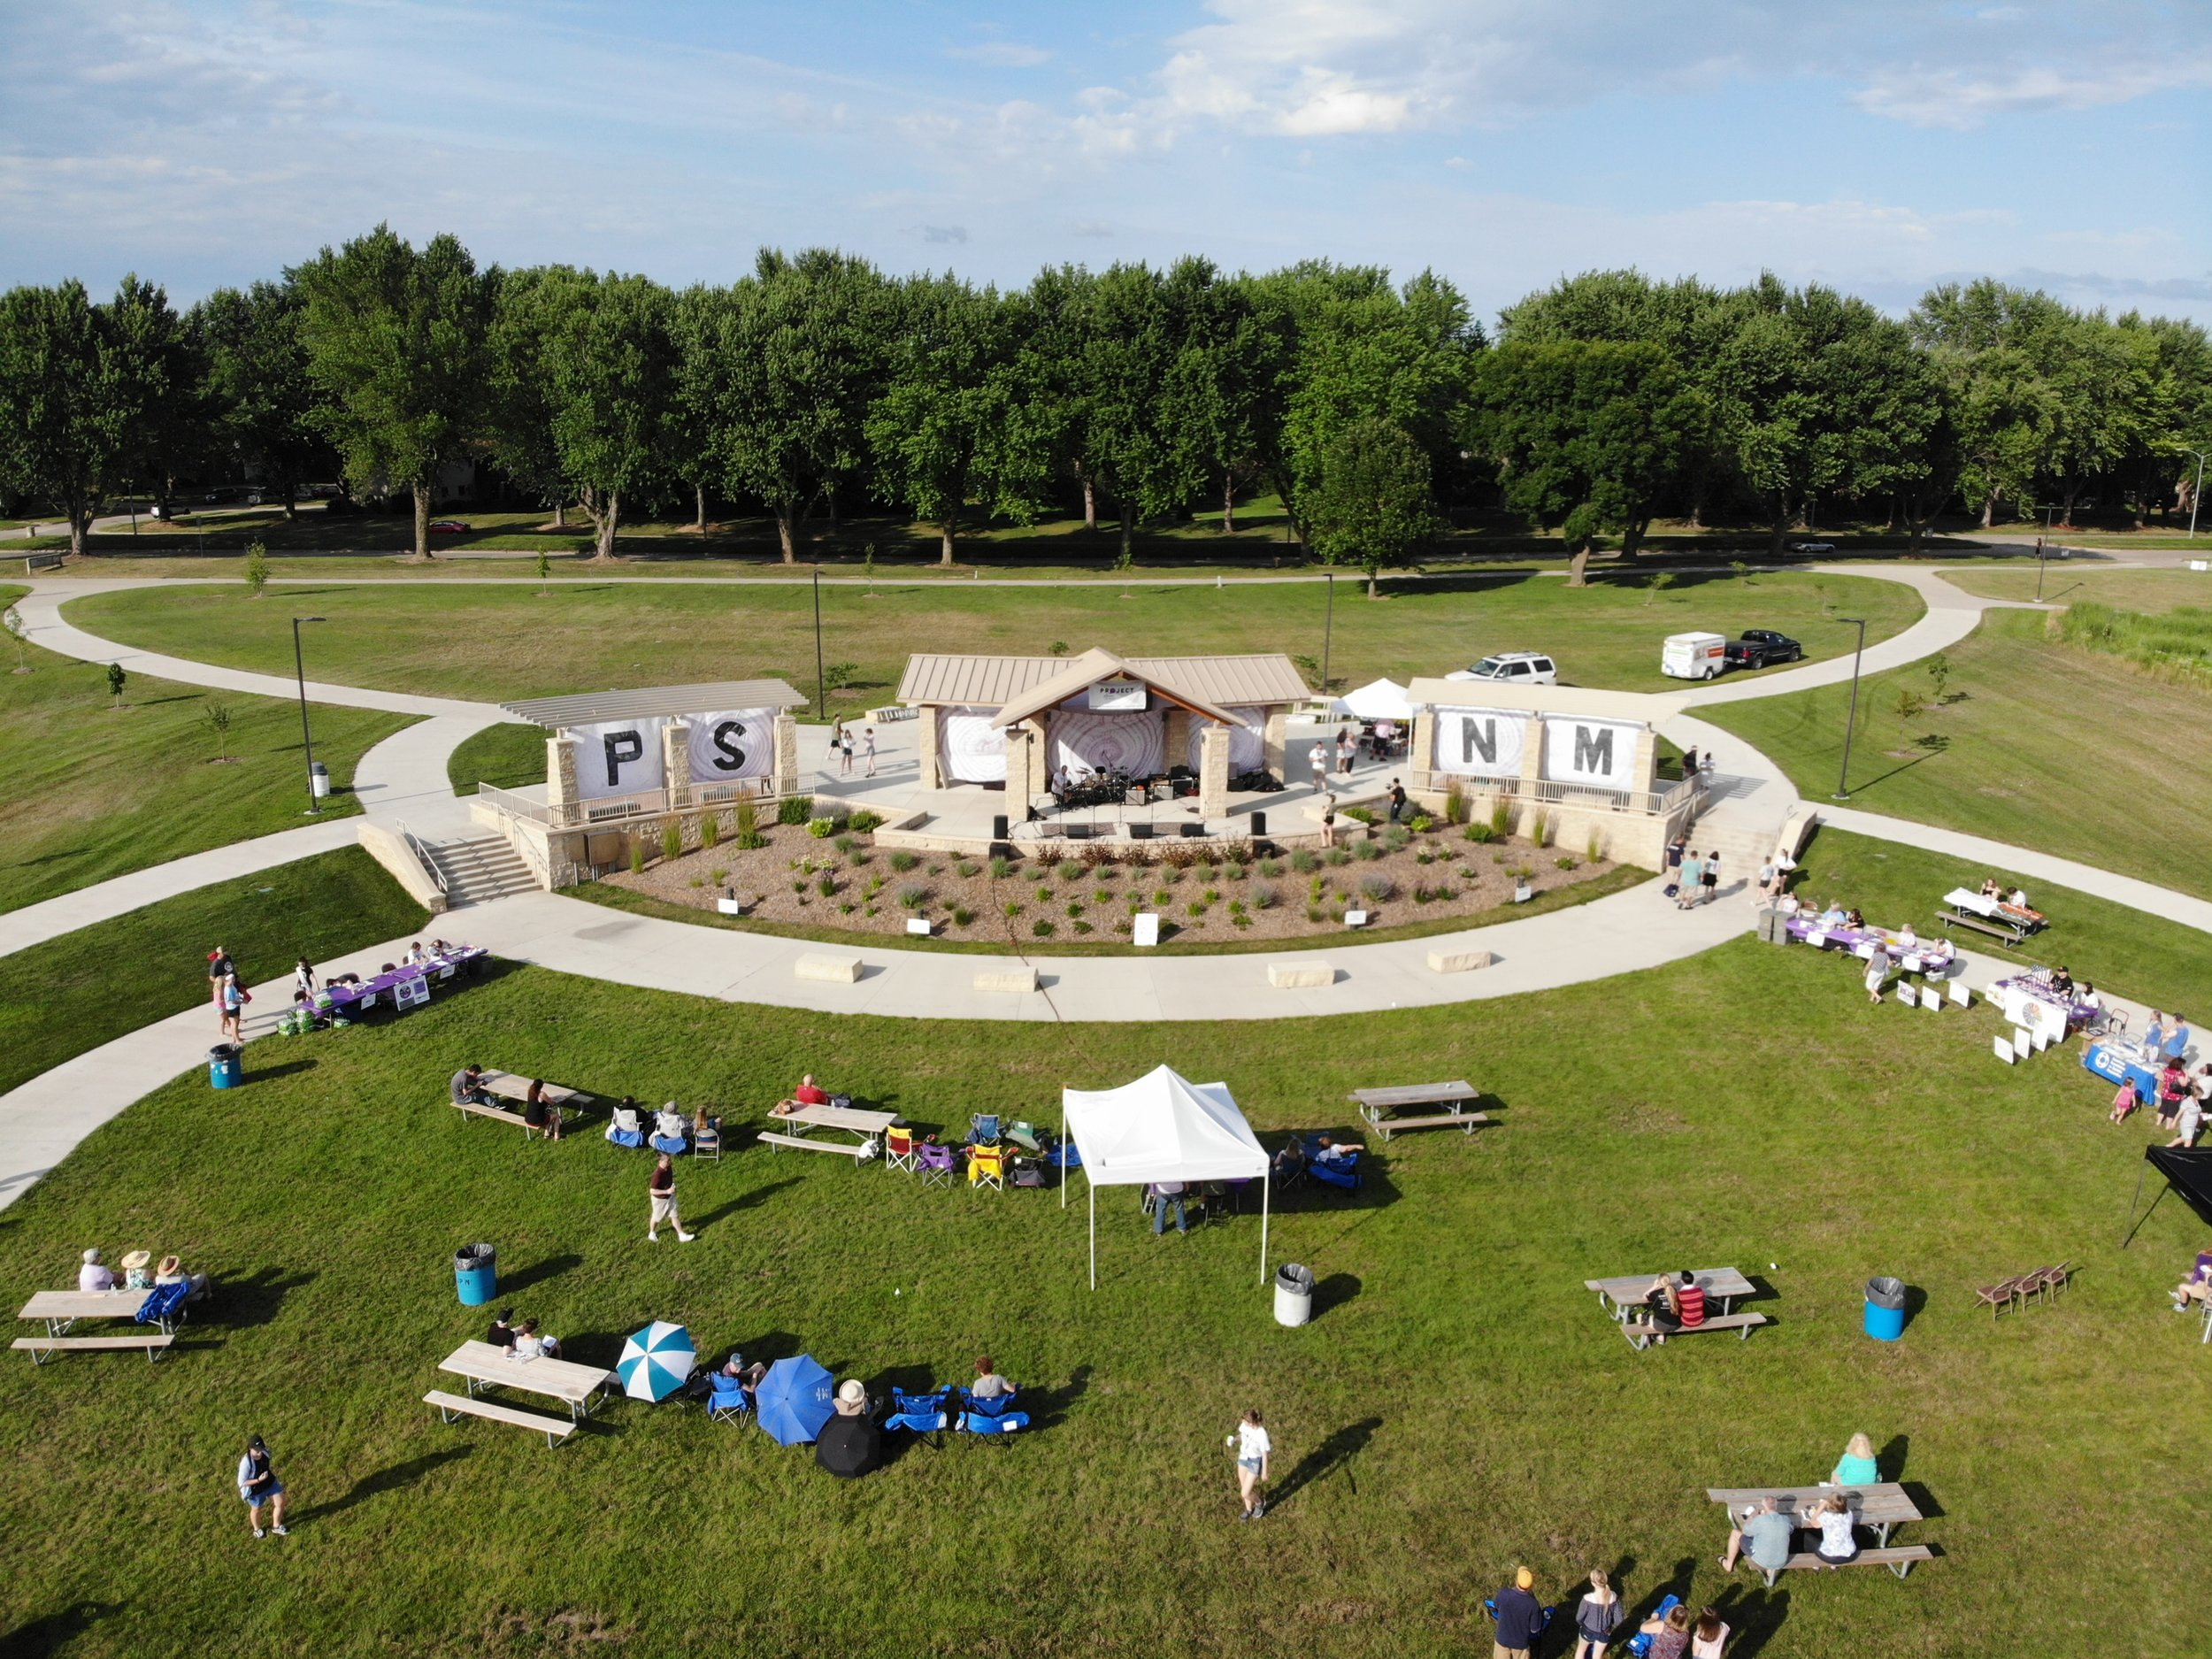 A bird's eye view of Terra Park the day of the concert.